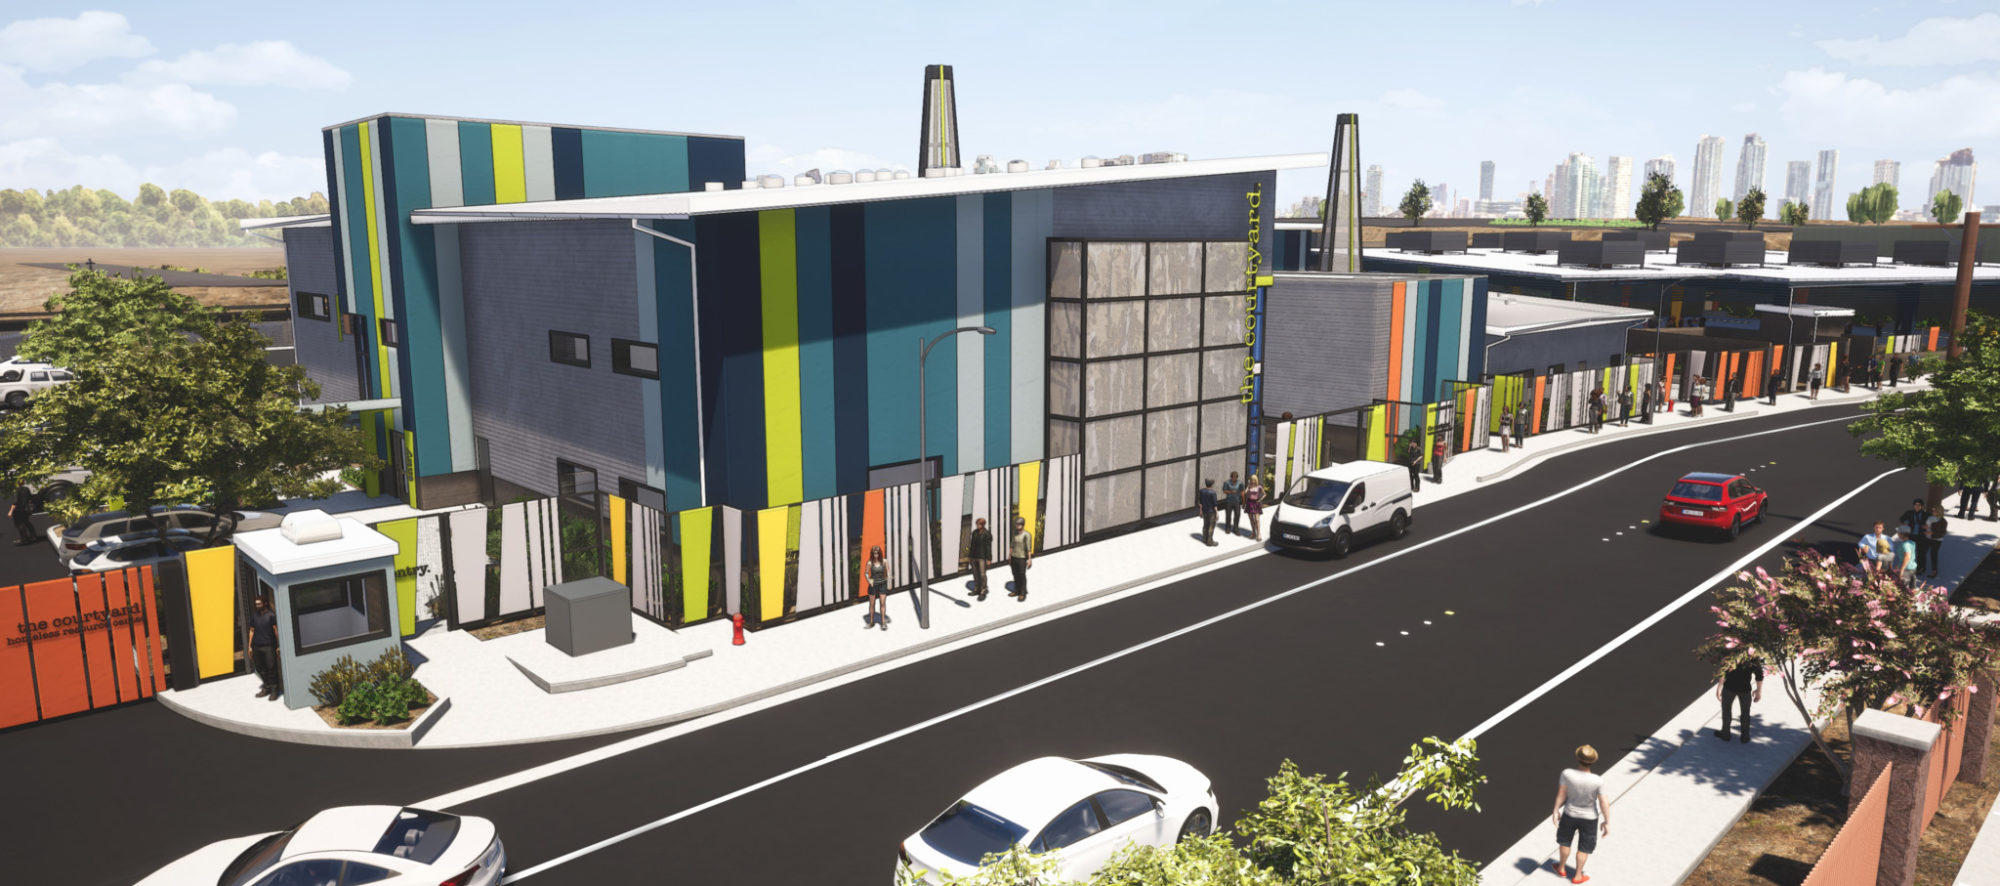 An exterior rendering of the Corridor of Hope Courtyard in Downtown Las Vegas, designed by LGA Architecture.